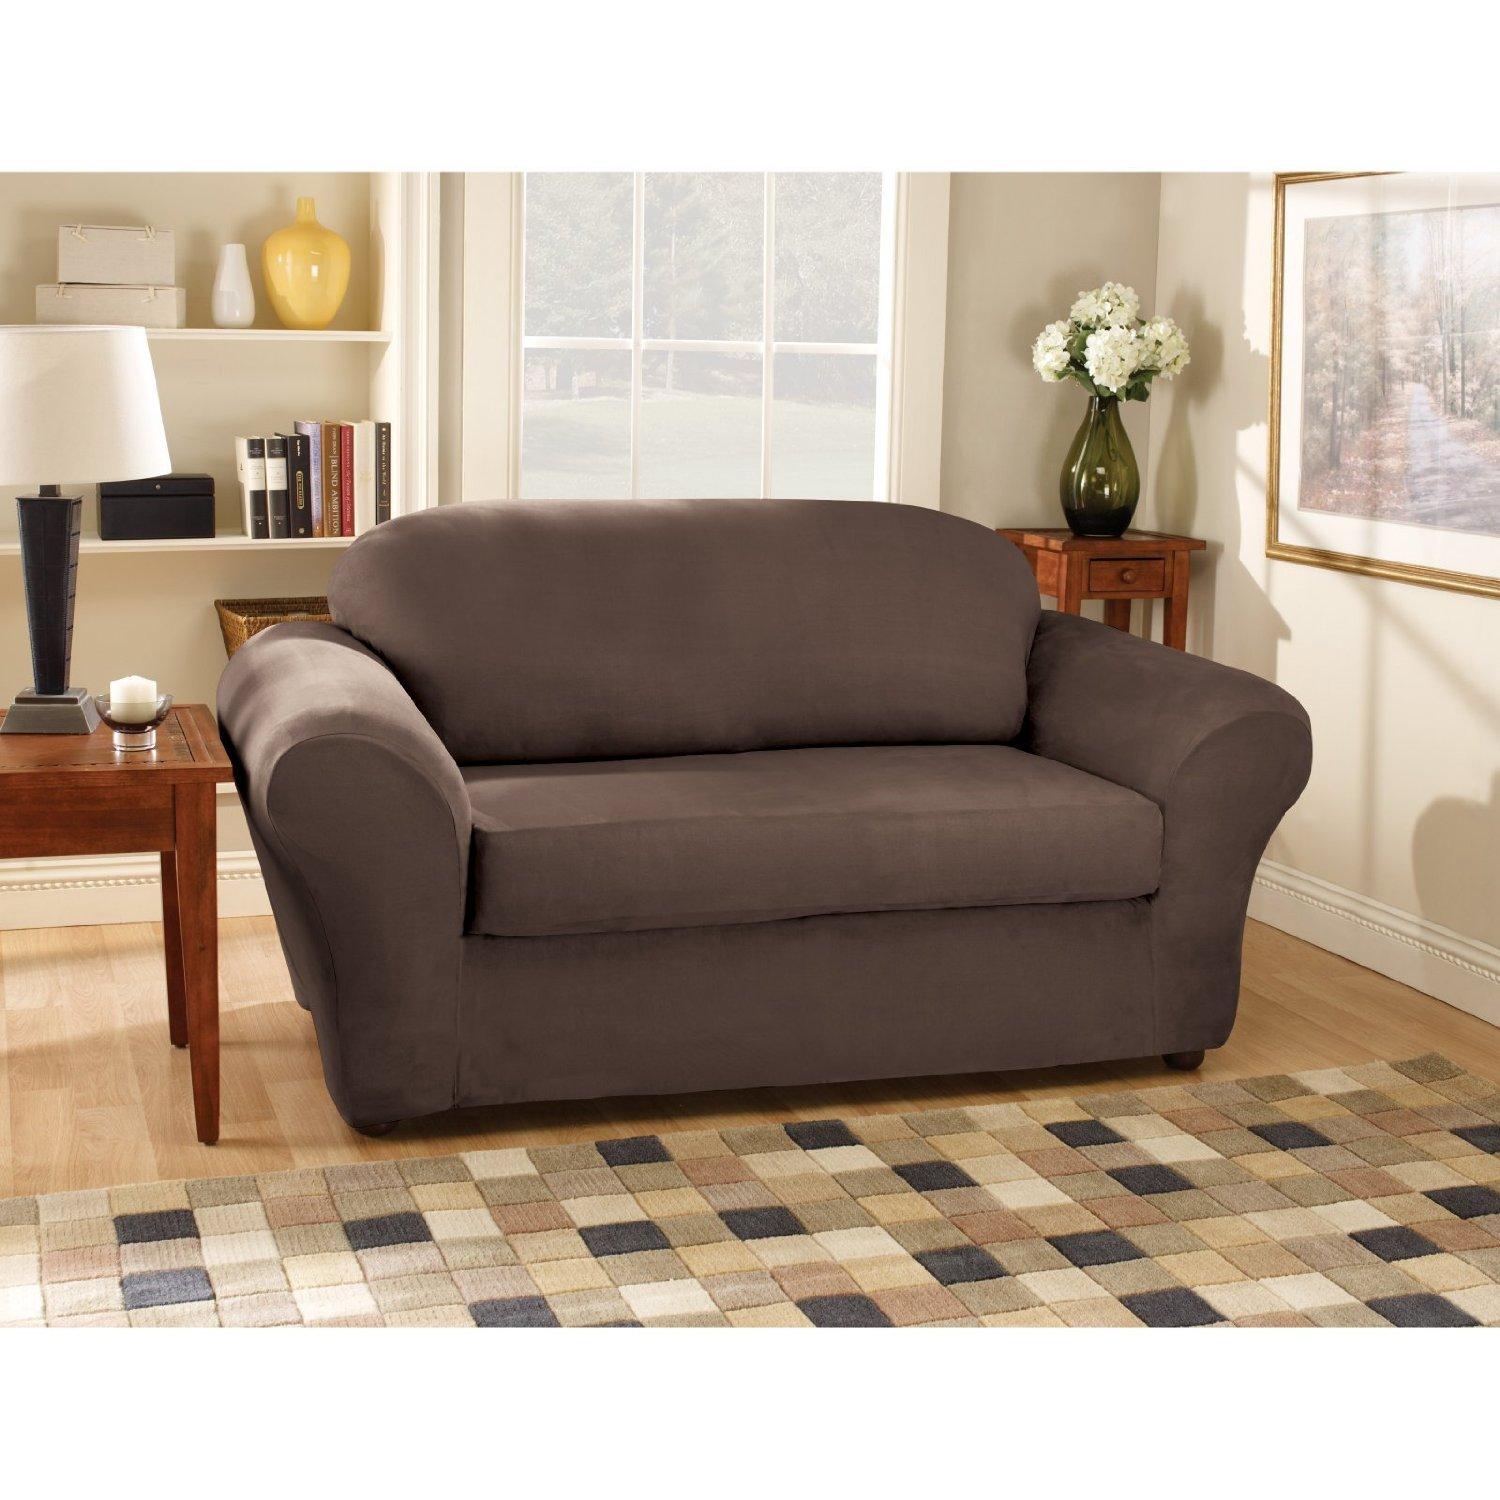 Where to buy couch covers cheap and stylish couch sofa Discount designer sofas